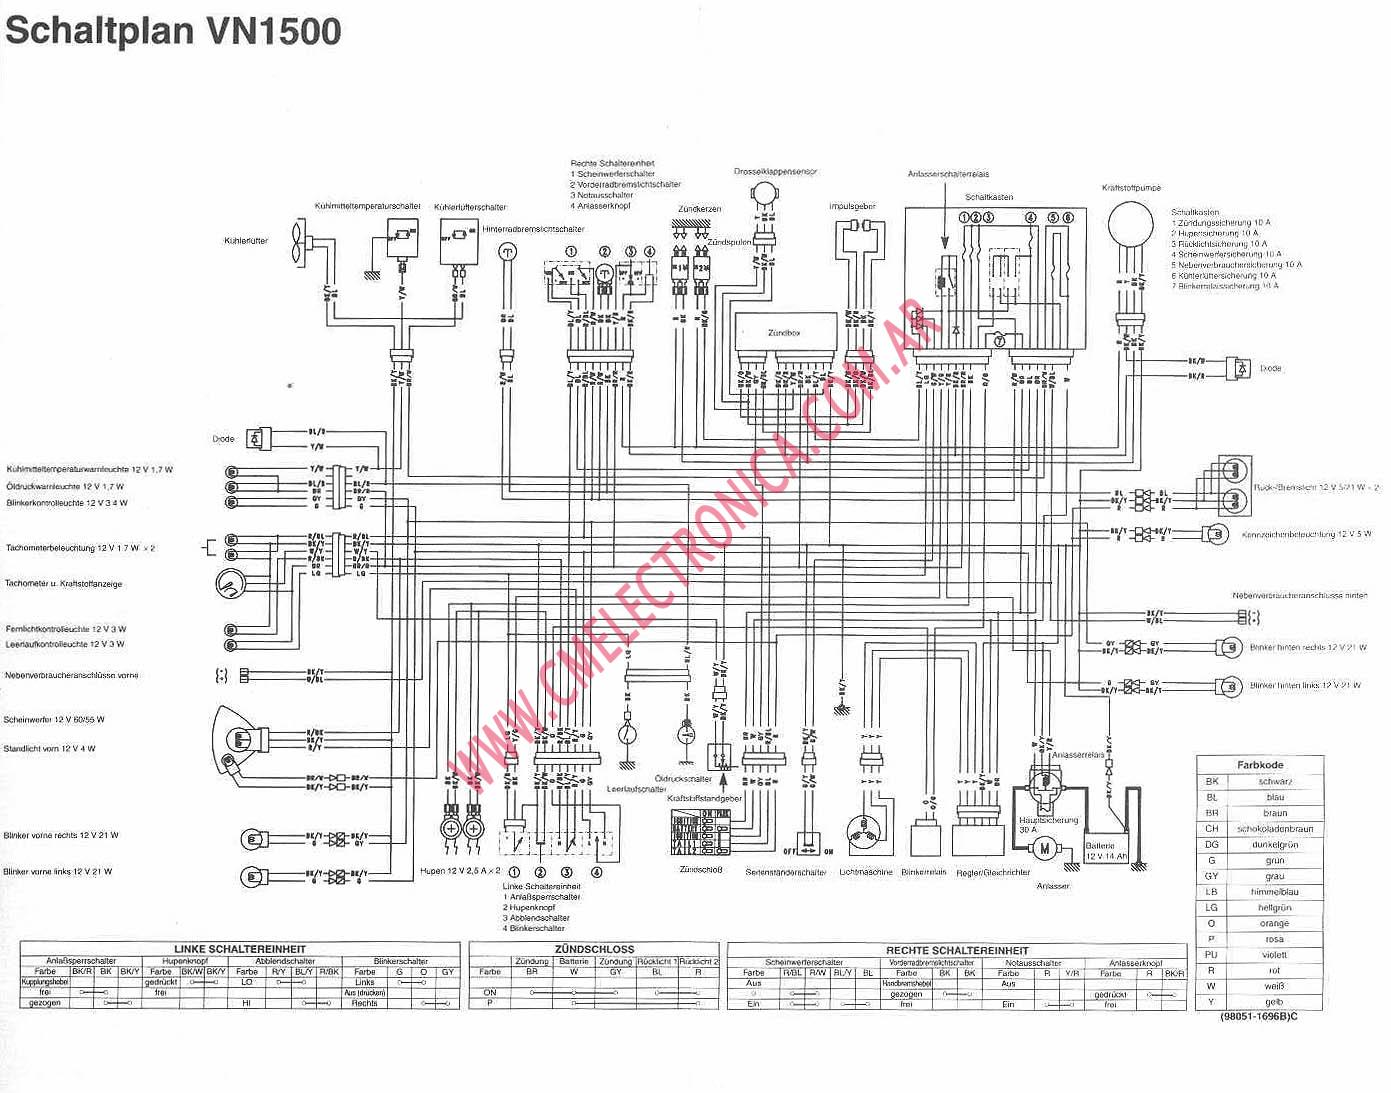 Honda Cdi Wiring Diagram Schemes furthermore Kawasaki 750 Jet Ski Engine Diagram besides Kawasaki Kz440 Wiring Diagram besides Wiring Diagram For Kawasaki 78 Kz650 also Wiring Diagram For Switch Leg. on kawasaki kz1000 wiring diagram